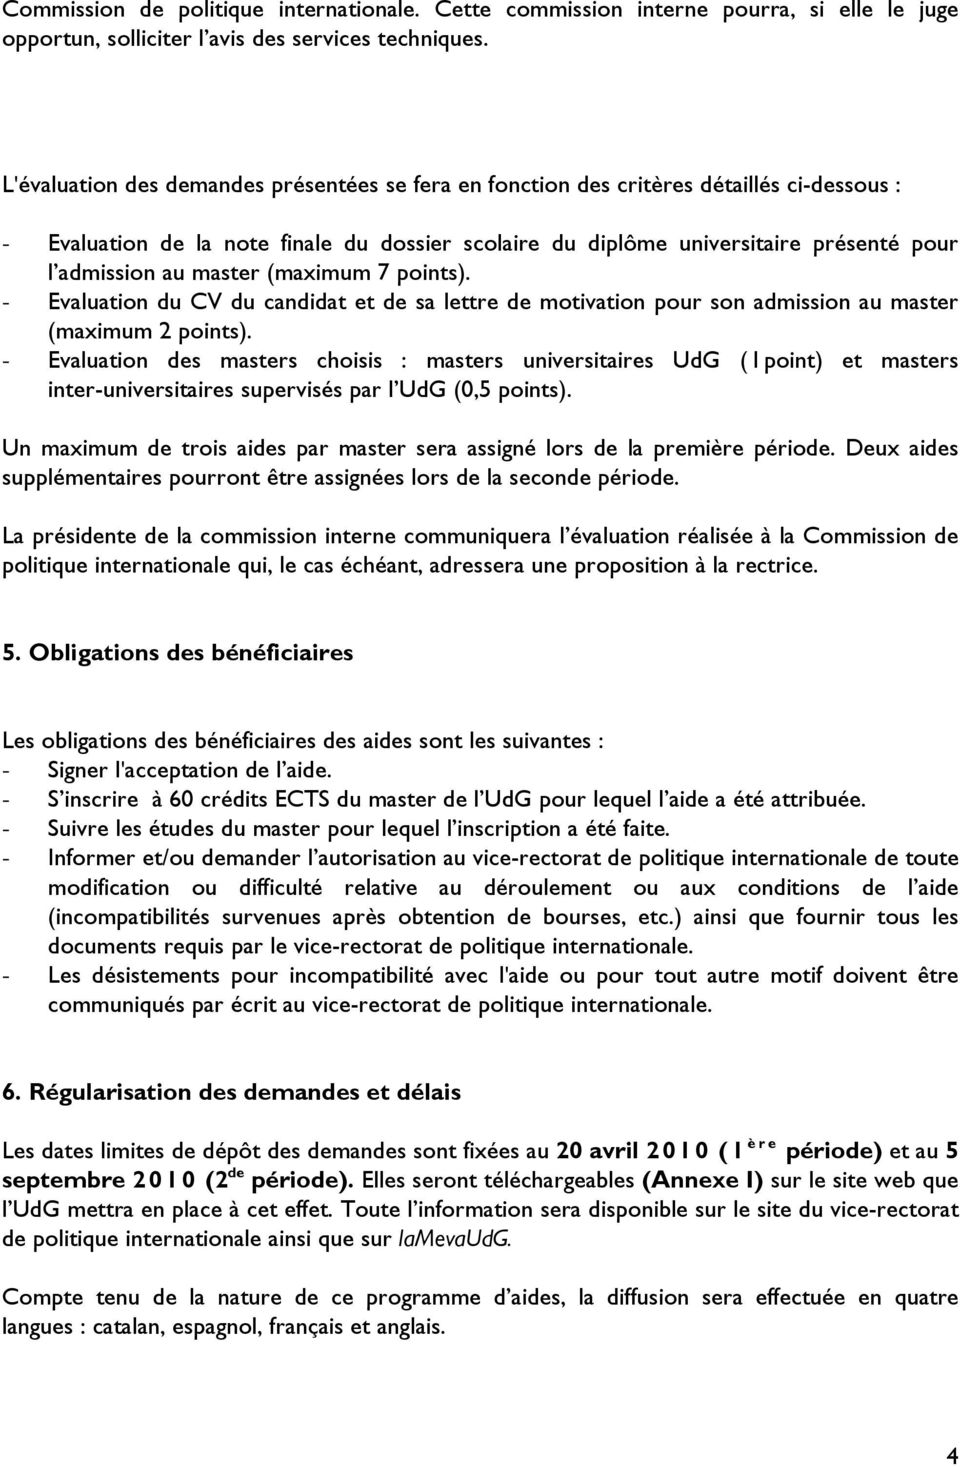 master (maximum 7 points). - Evaluation du CV du candidat et de sa lettre de motivation pour son admission au master (maximum 2 points).